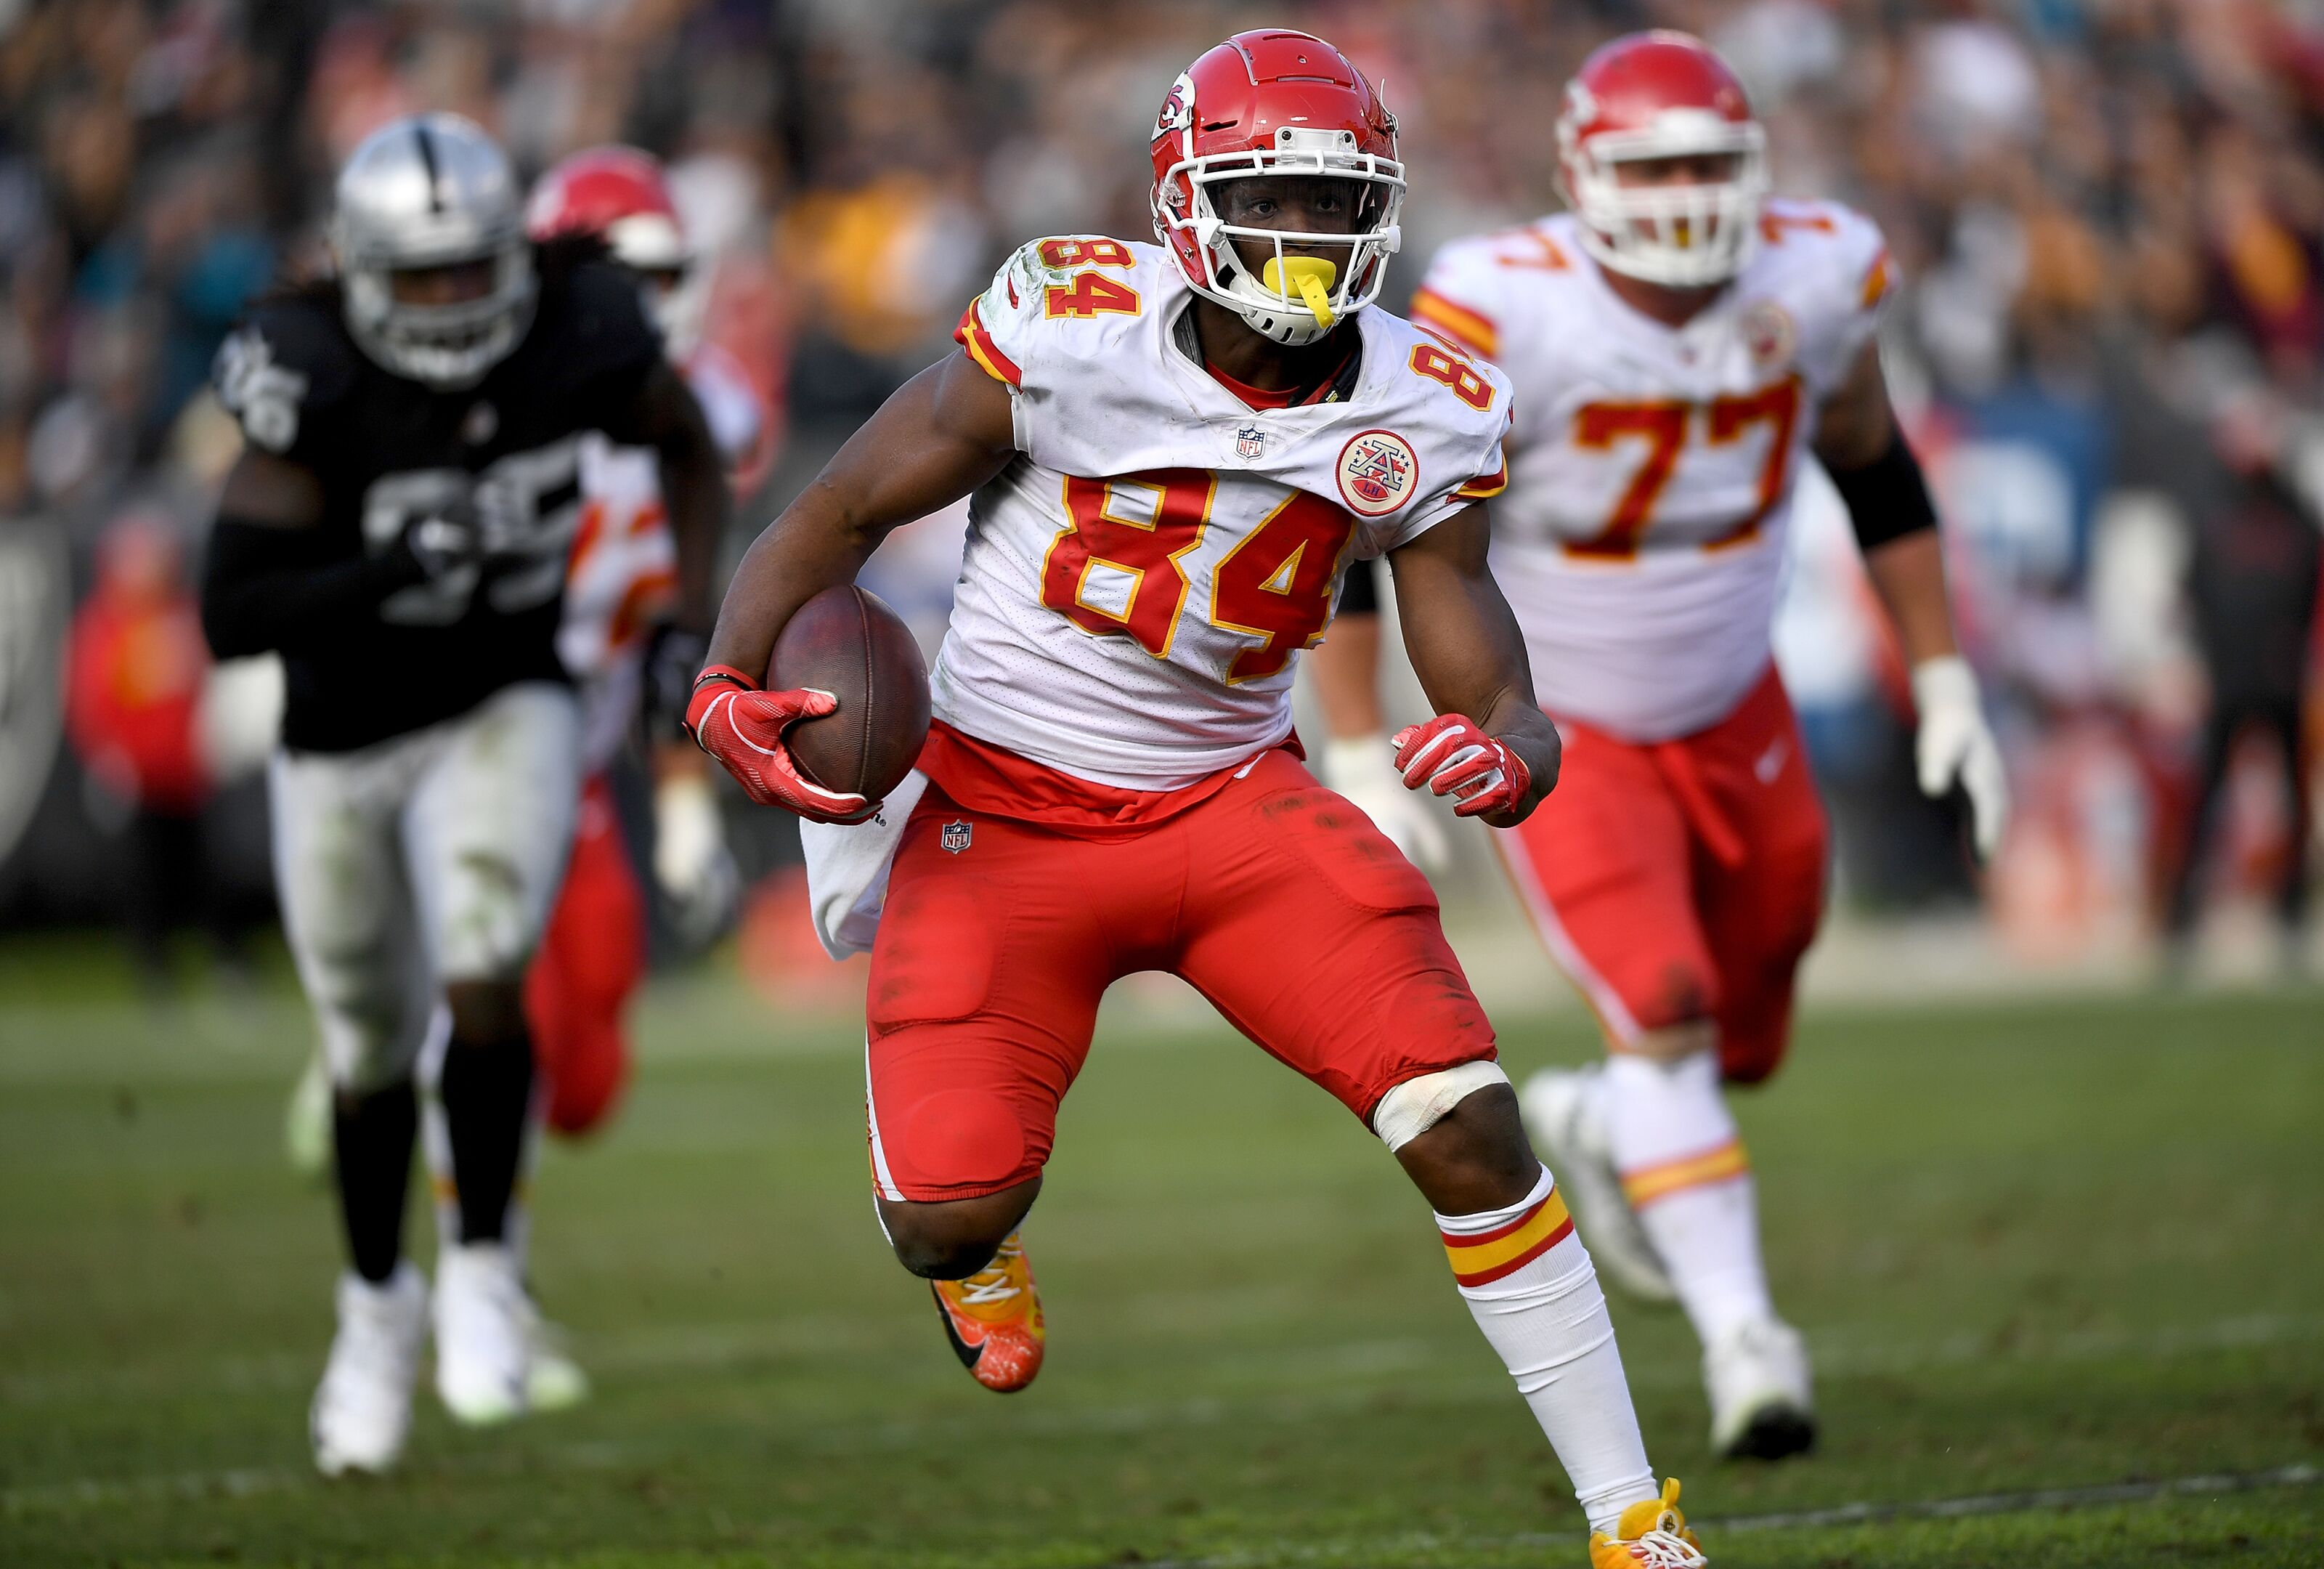 OAKLAND, CA - DECEMBER 02: Demetrius Harris #84 of the Kansas City Chiefs runs with the ball after catching a pass against the Oakland Raiders during the second half of an NFL football game at Oakland-Alameda County Coliseum on December 2, 2018 in Oakland, California. (Photo by Thearon W. Henderson/Getty Images)